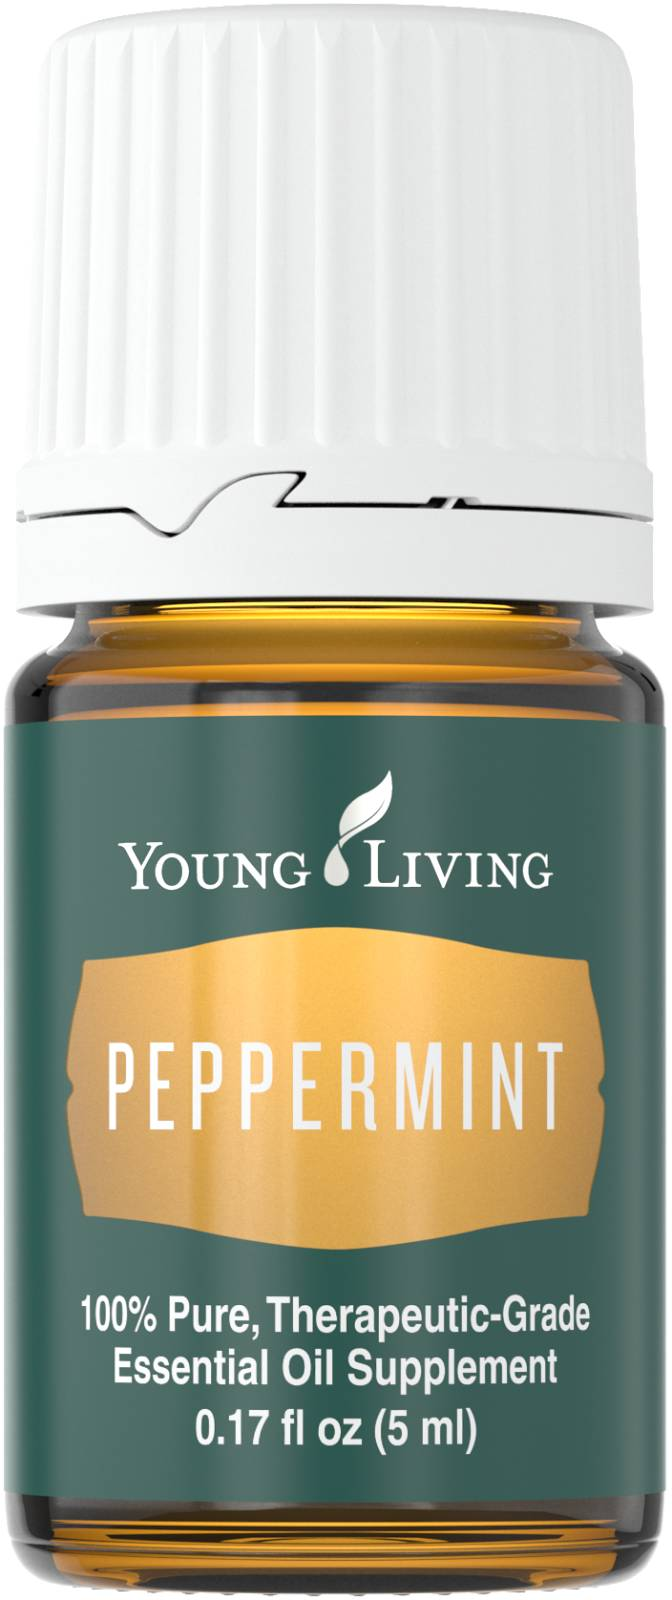 A Few of My Favorite Things: Peppermint